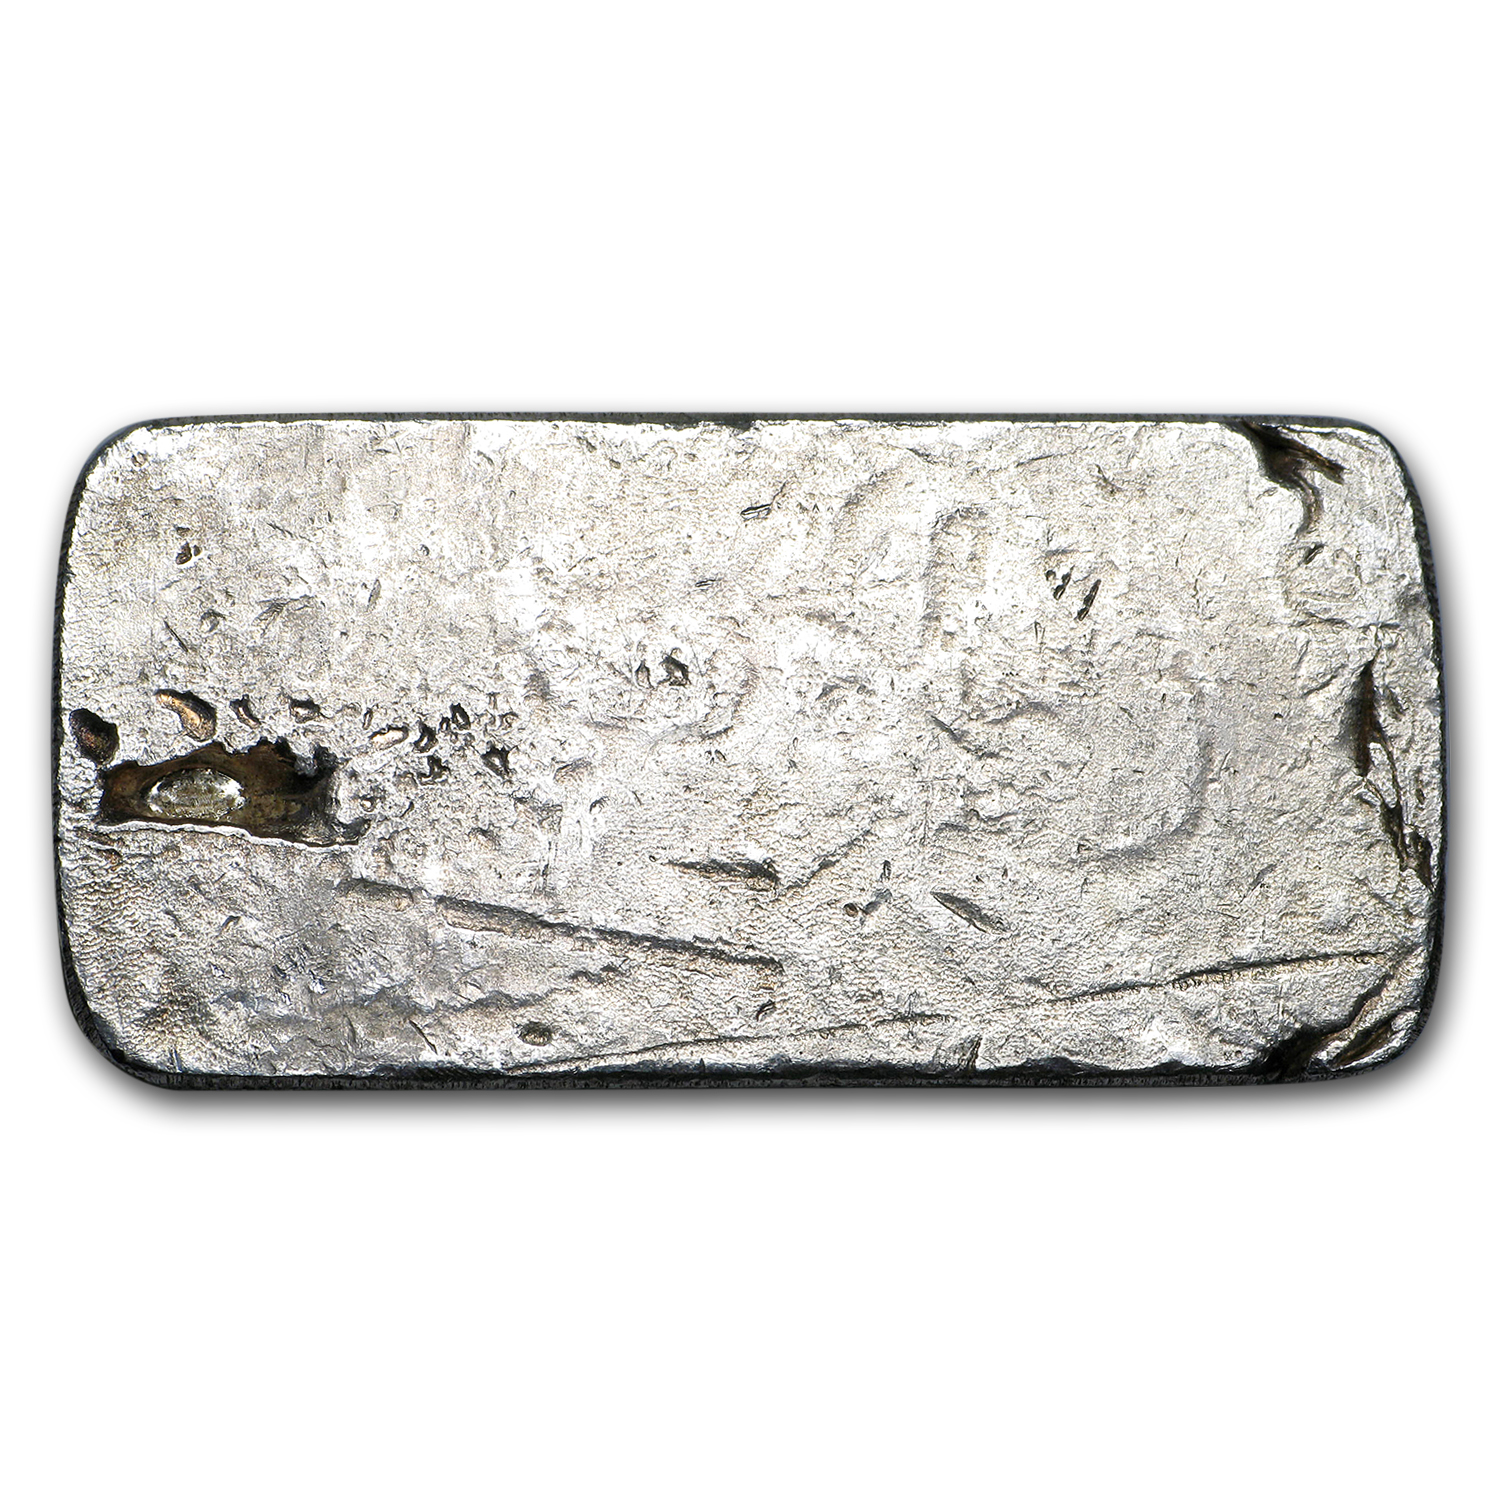 5 oz Silver Bars - Nevada Coin Mart Ingot